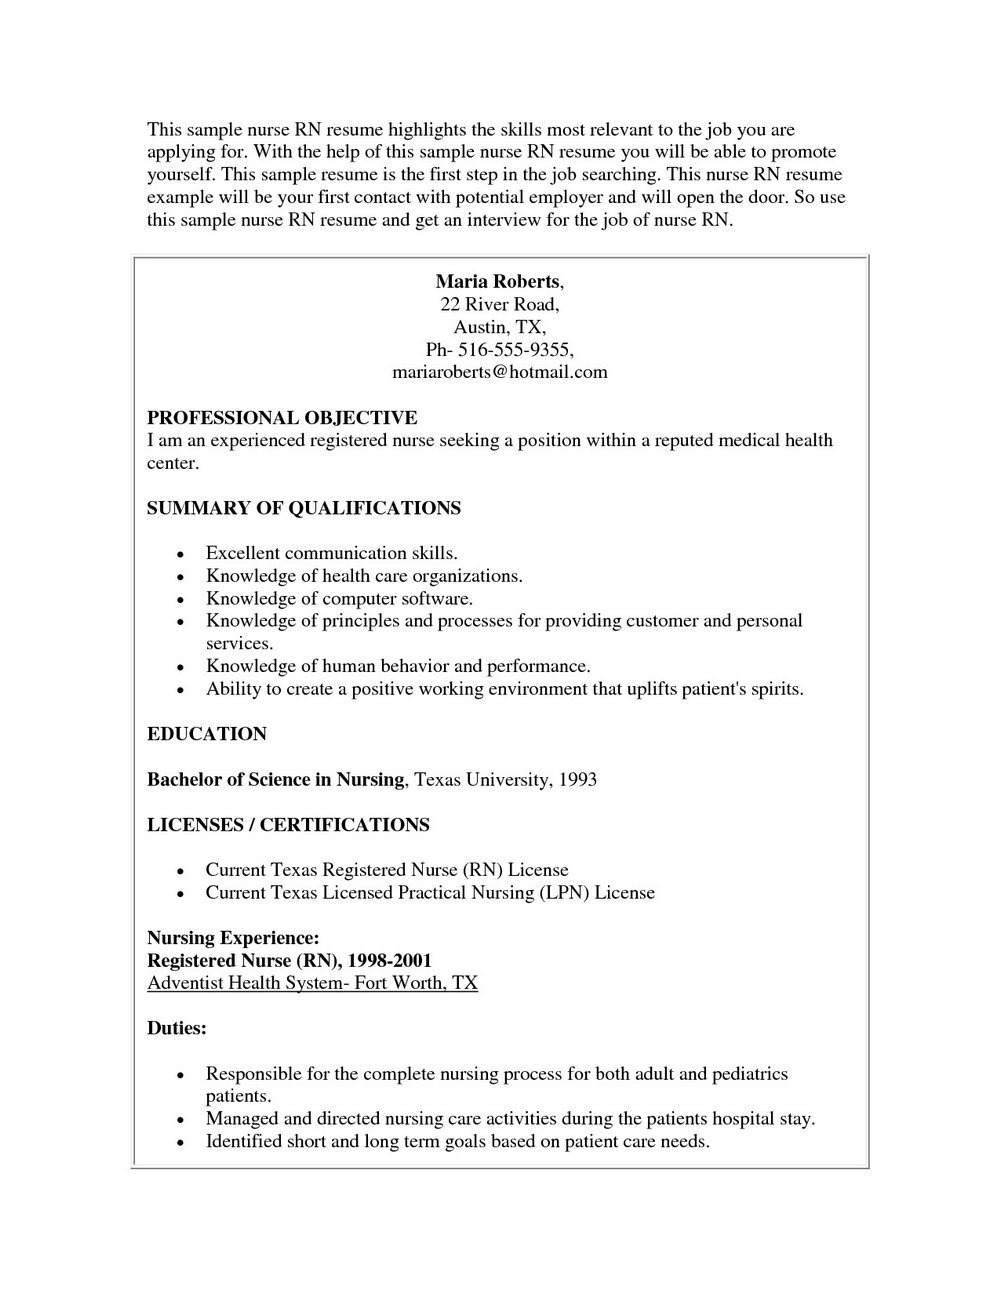 Resume For Registered Nurse Position